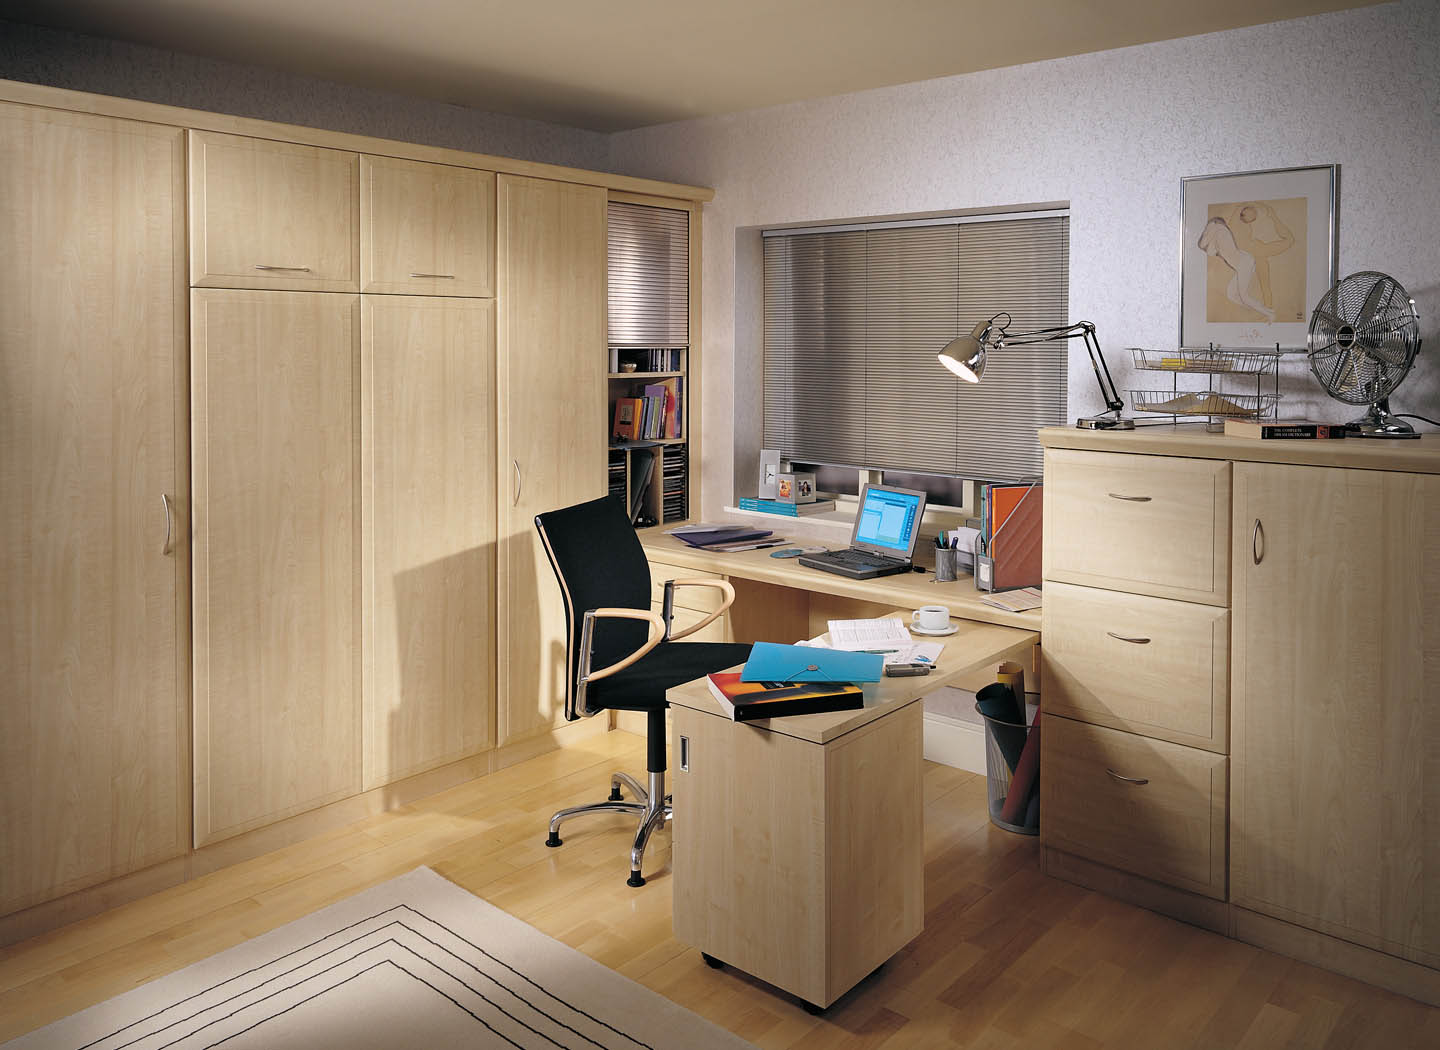 Alto study with wall bed and fold away desk